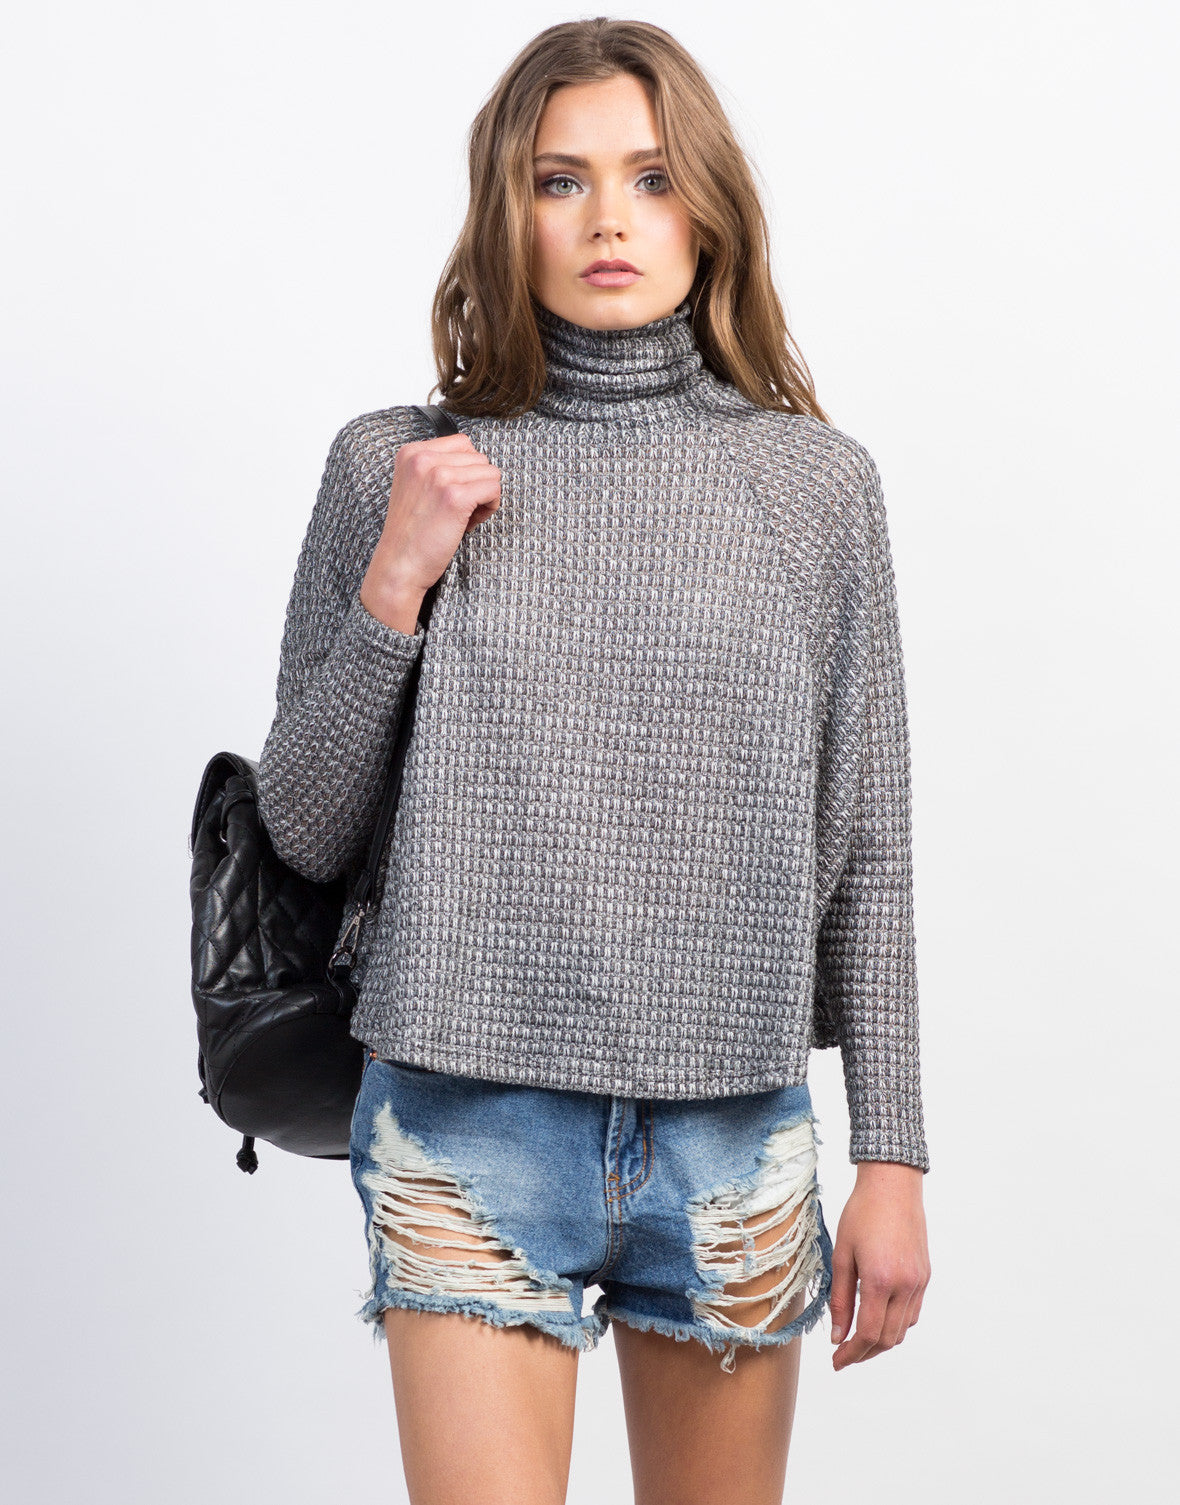 Front View of Knitted Flowy Turtleneck Top